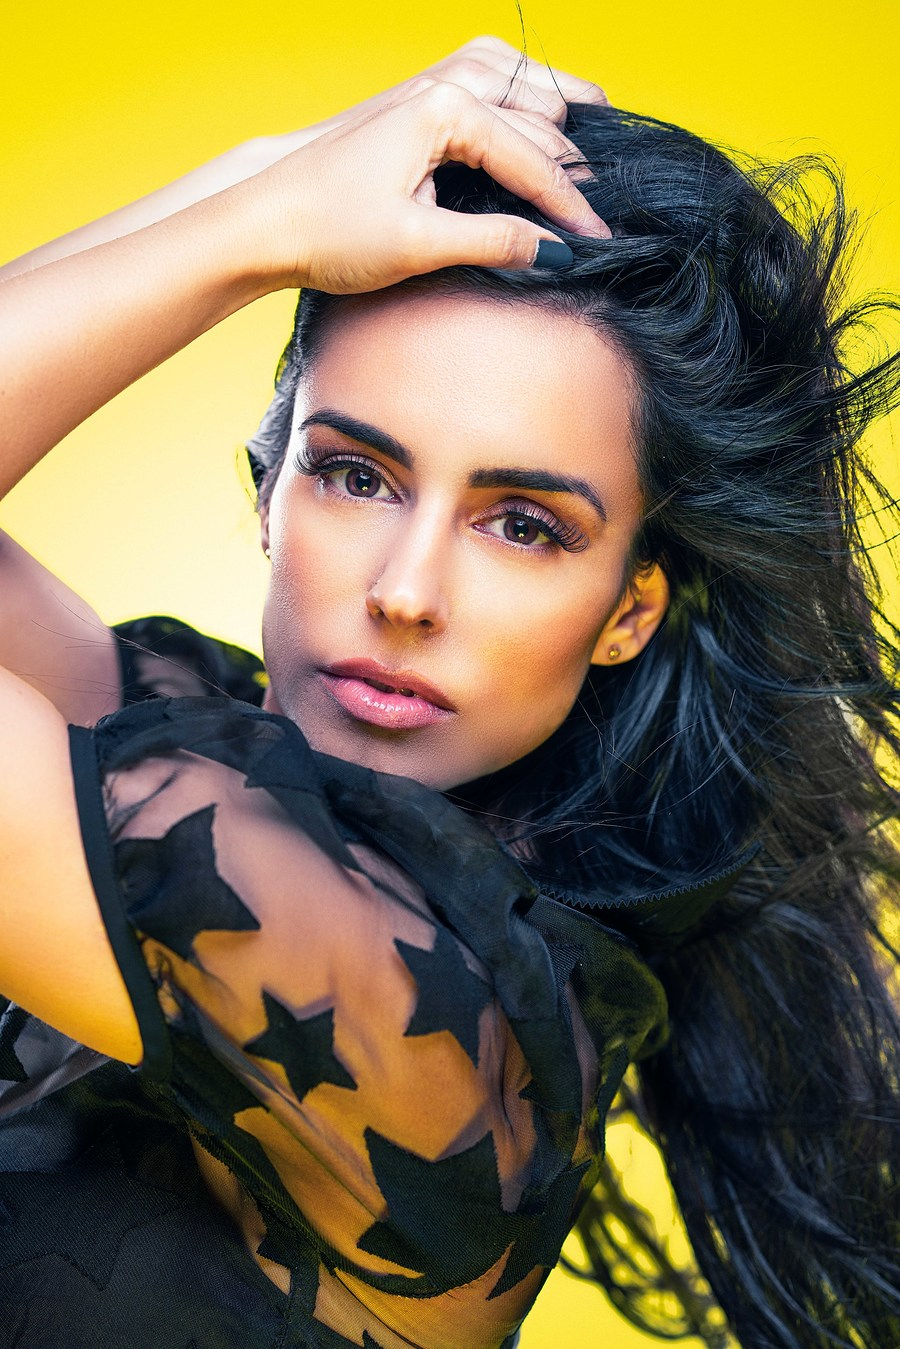 Yellow and black / Photography by David Abbs, Model AndraB, Taken at Shutter House / Uploaded 8th March 2019 @ 07:34 PM